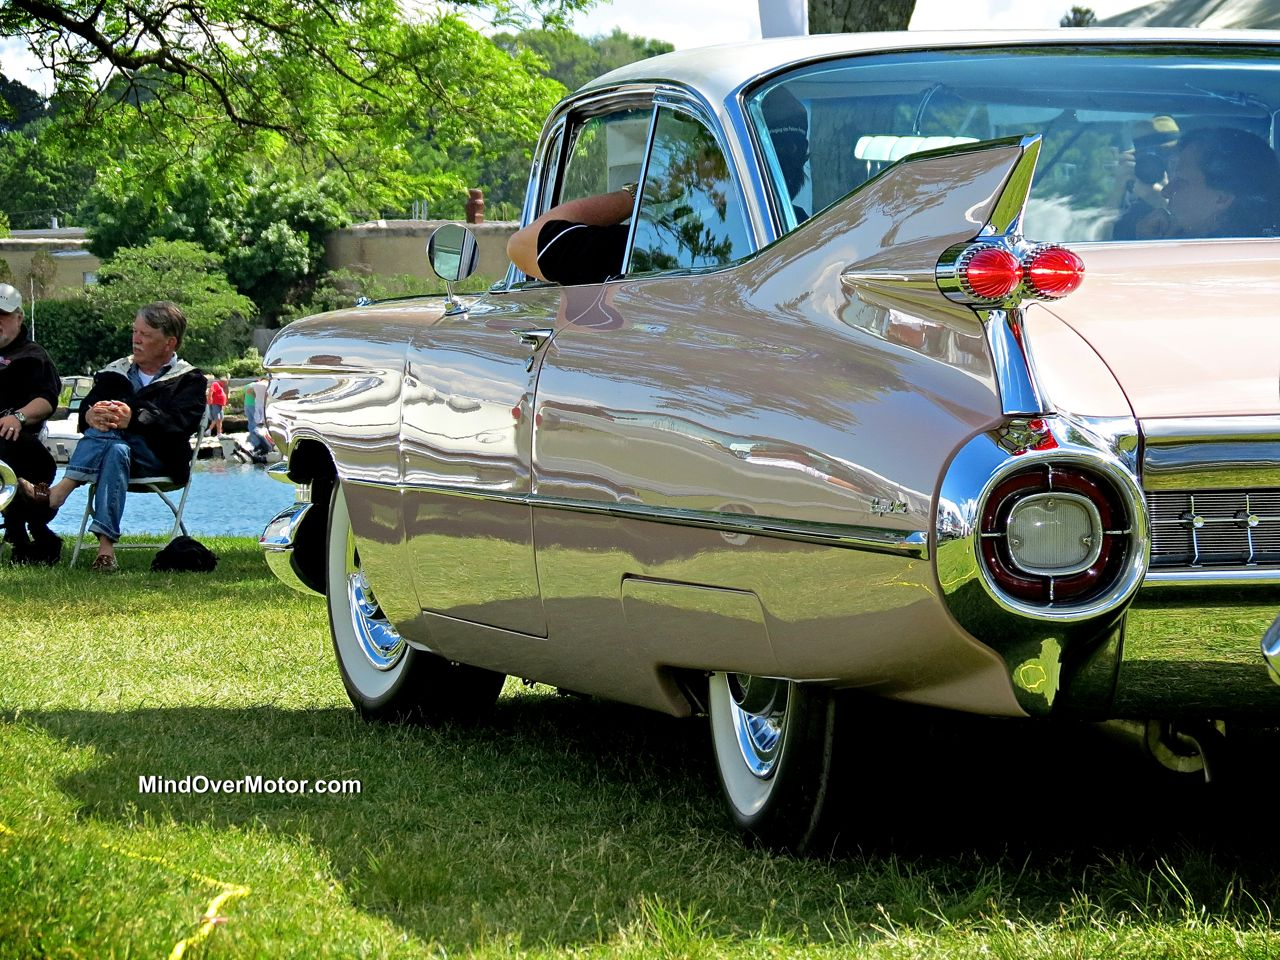 1959 Cadillac Coupe De Ville at the Greenwich Concours d'Elegance